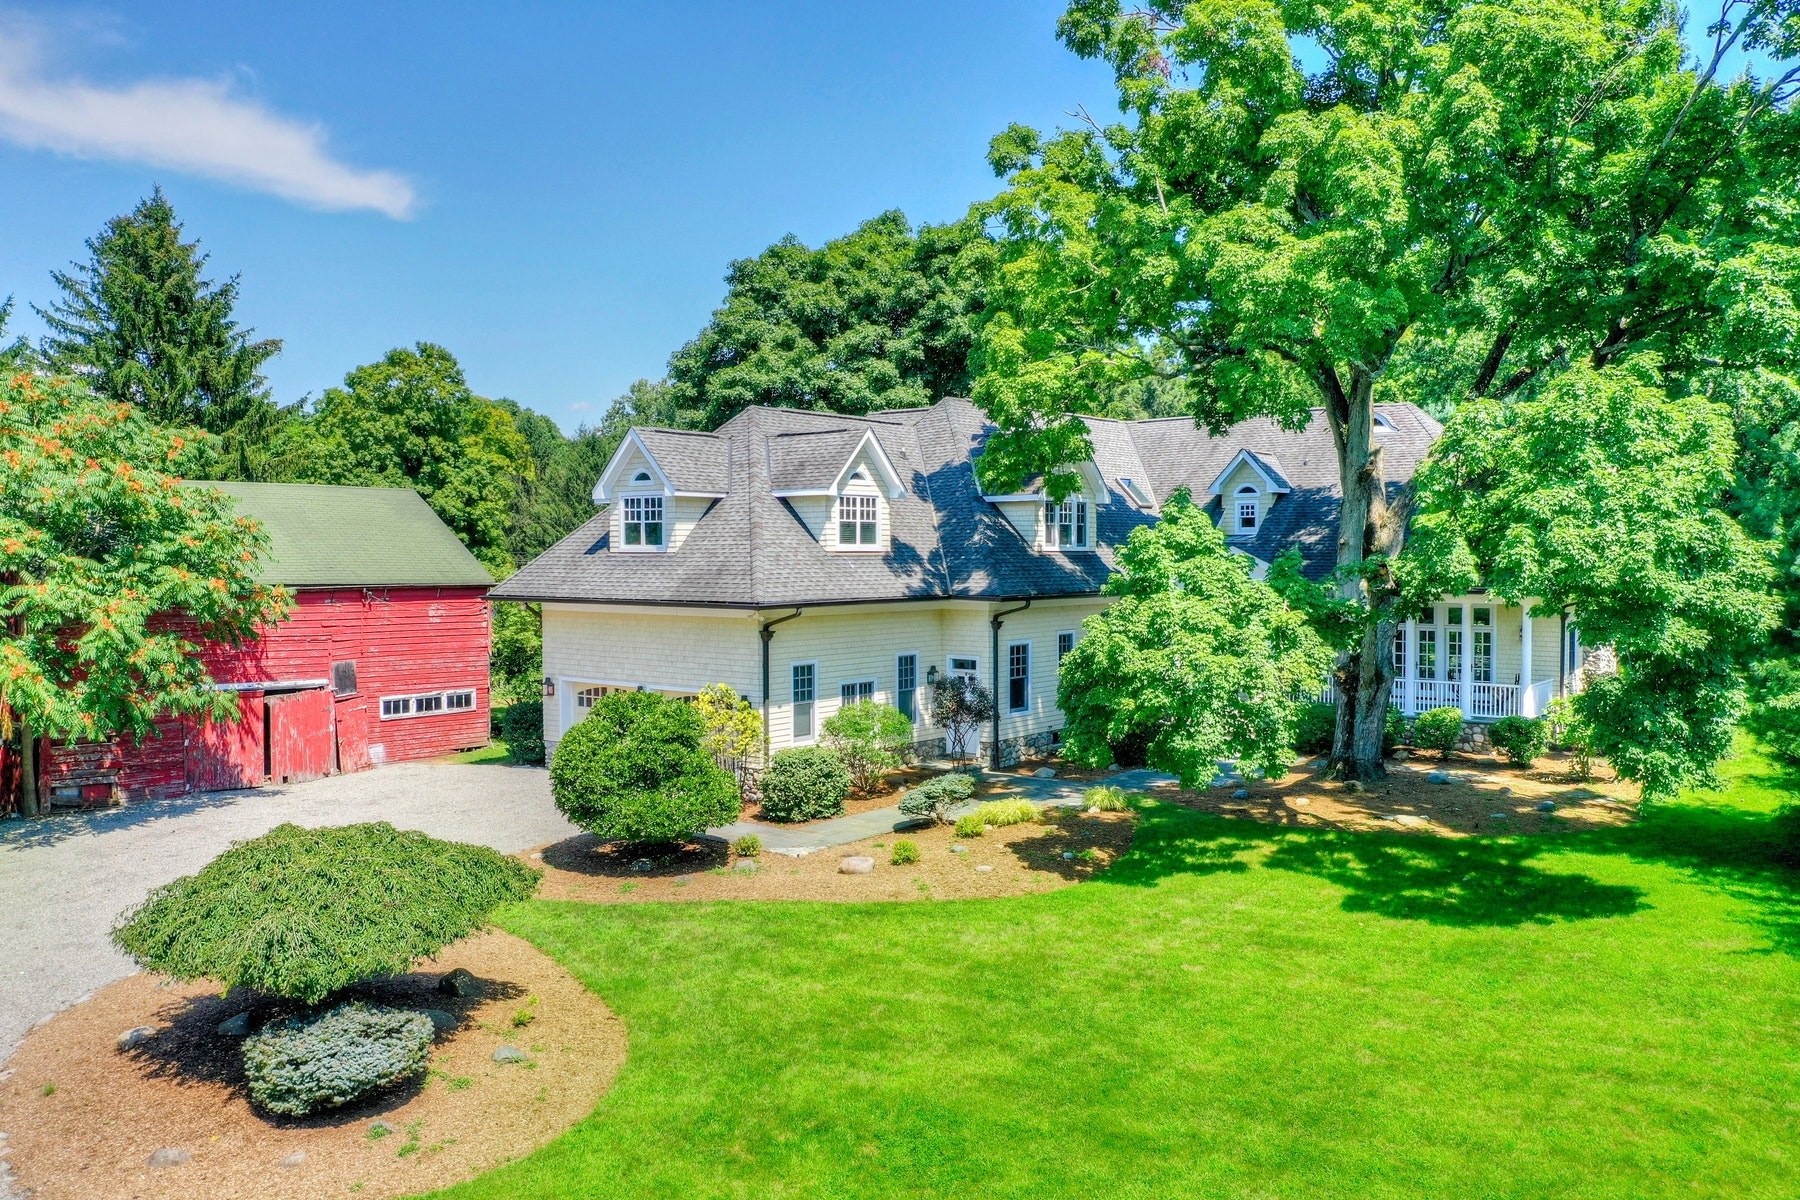 Single Family Homes for Sale at Shingle Style Retreat 97 E Saddle River Rd. Saddle River, New Jersey 07458 United States